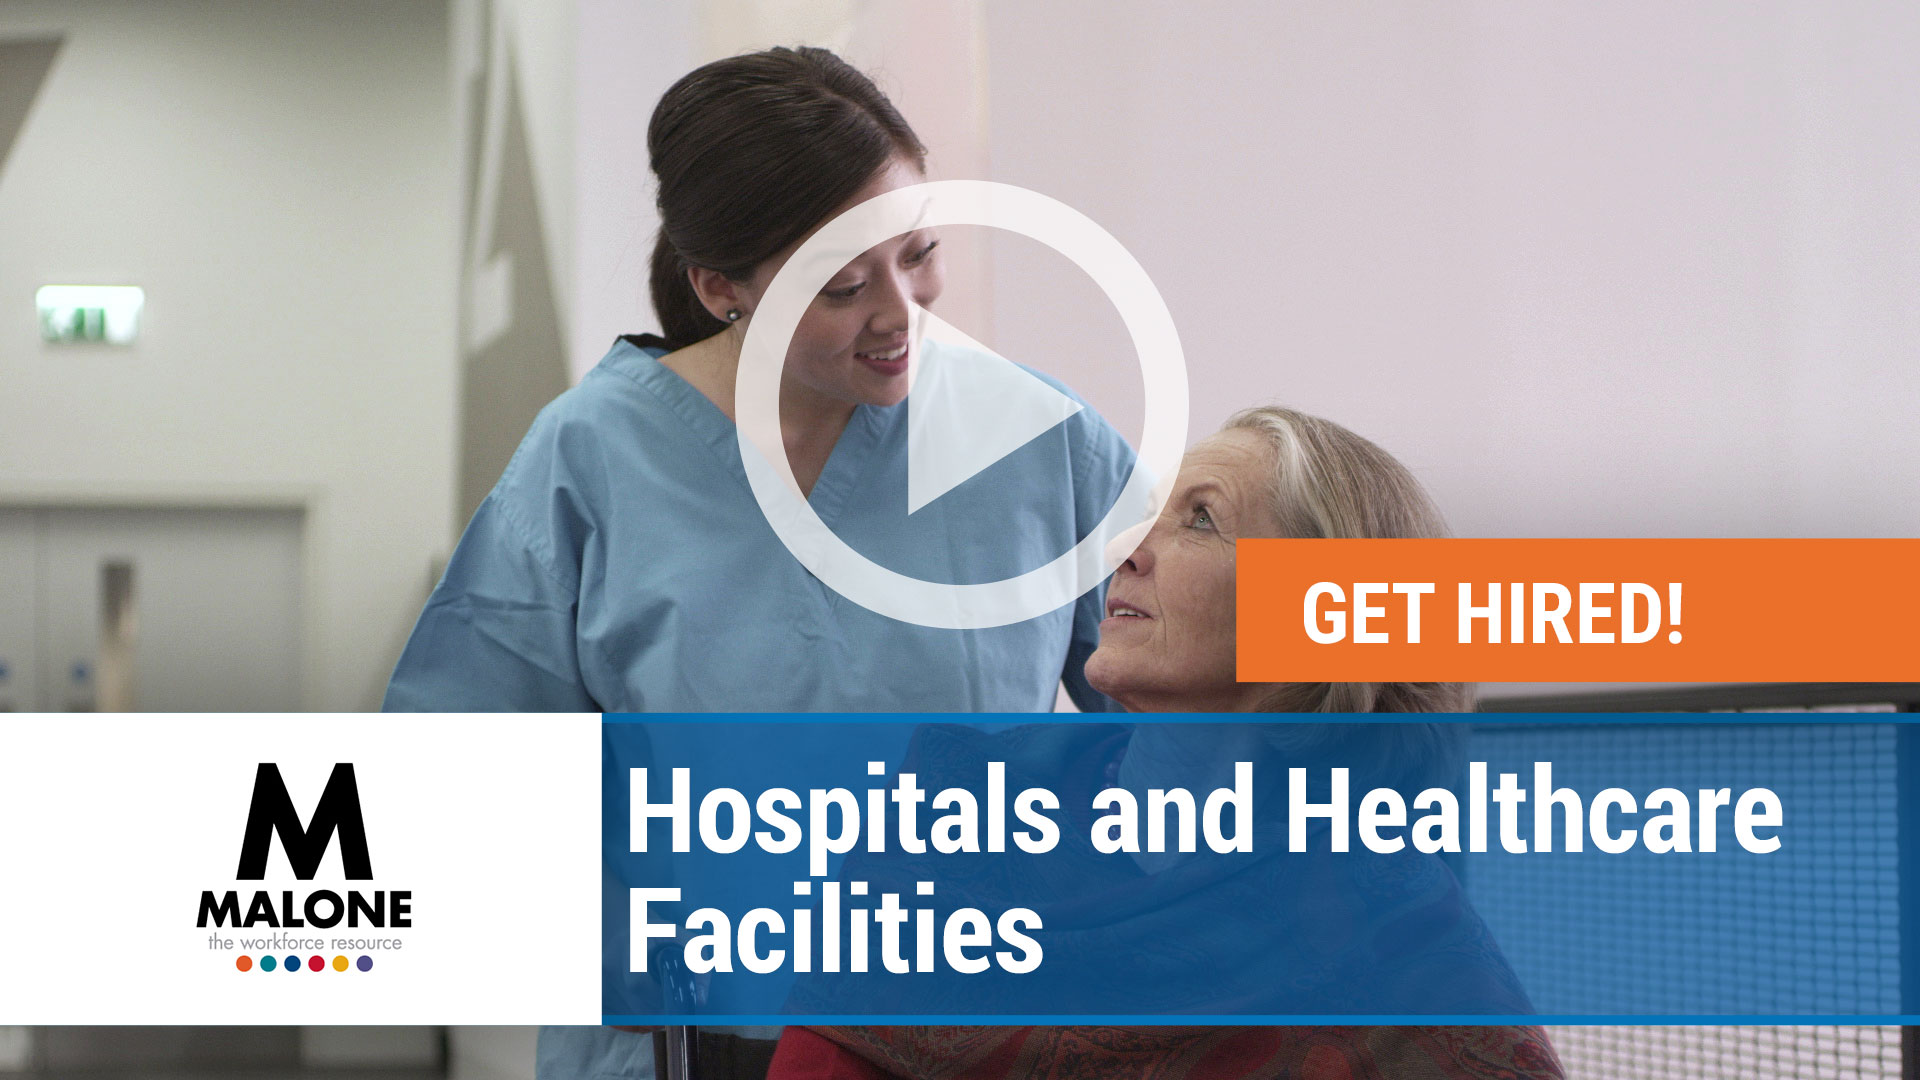 Watch our careers video for available job opening Hospitals and Healthcare Facilities in Multiple Locations